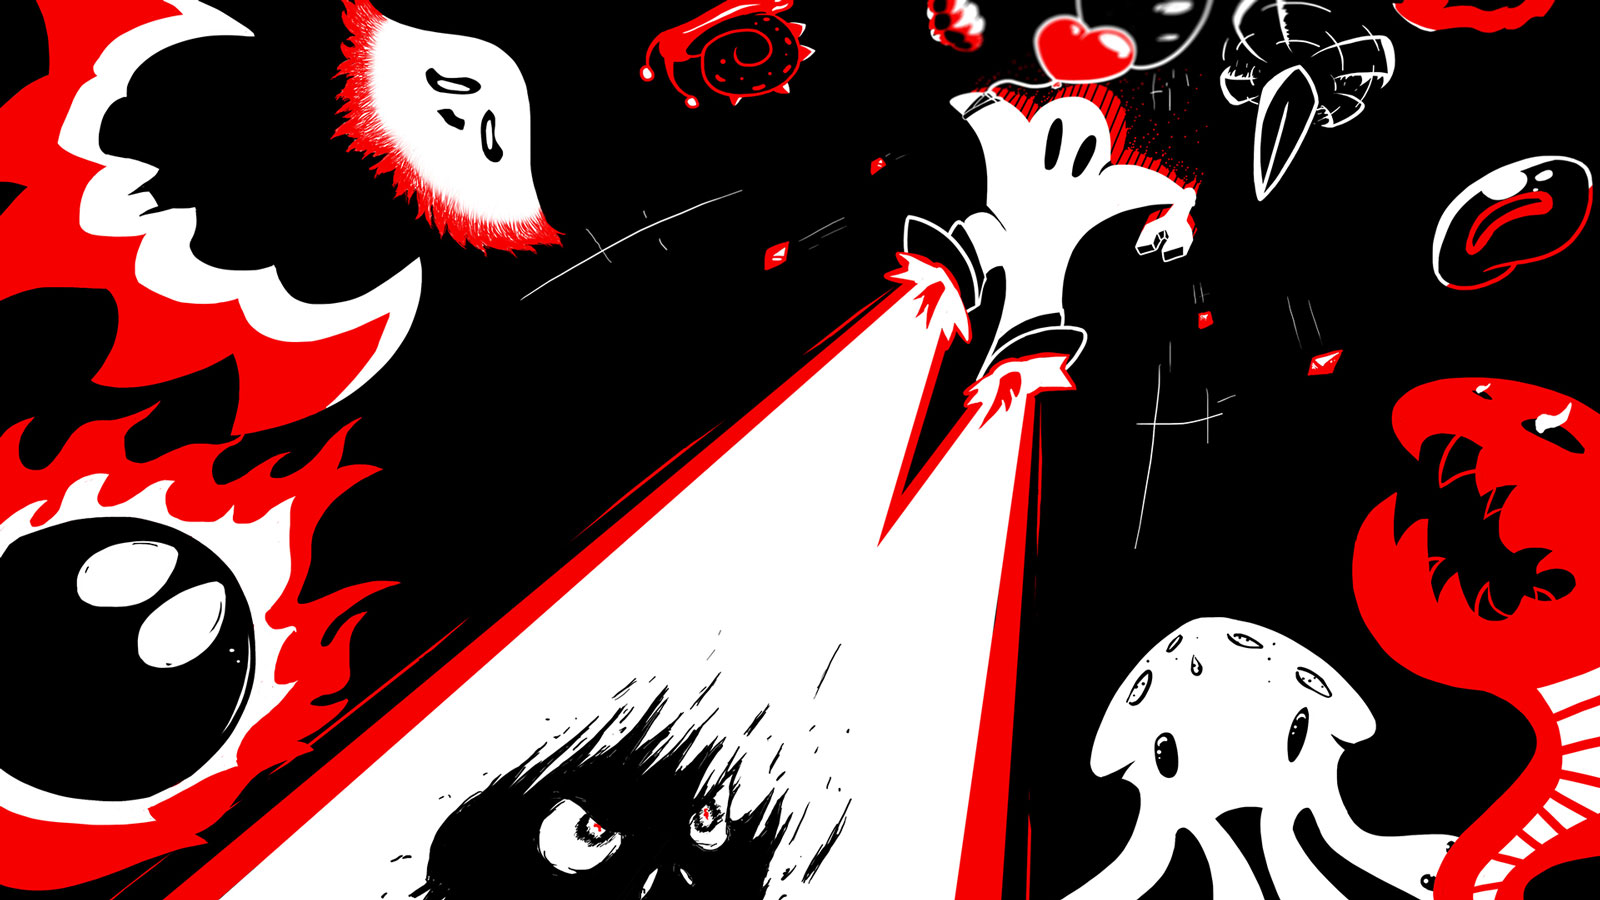 Free Downwell Wallpaper in 1600x900